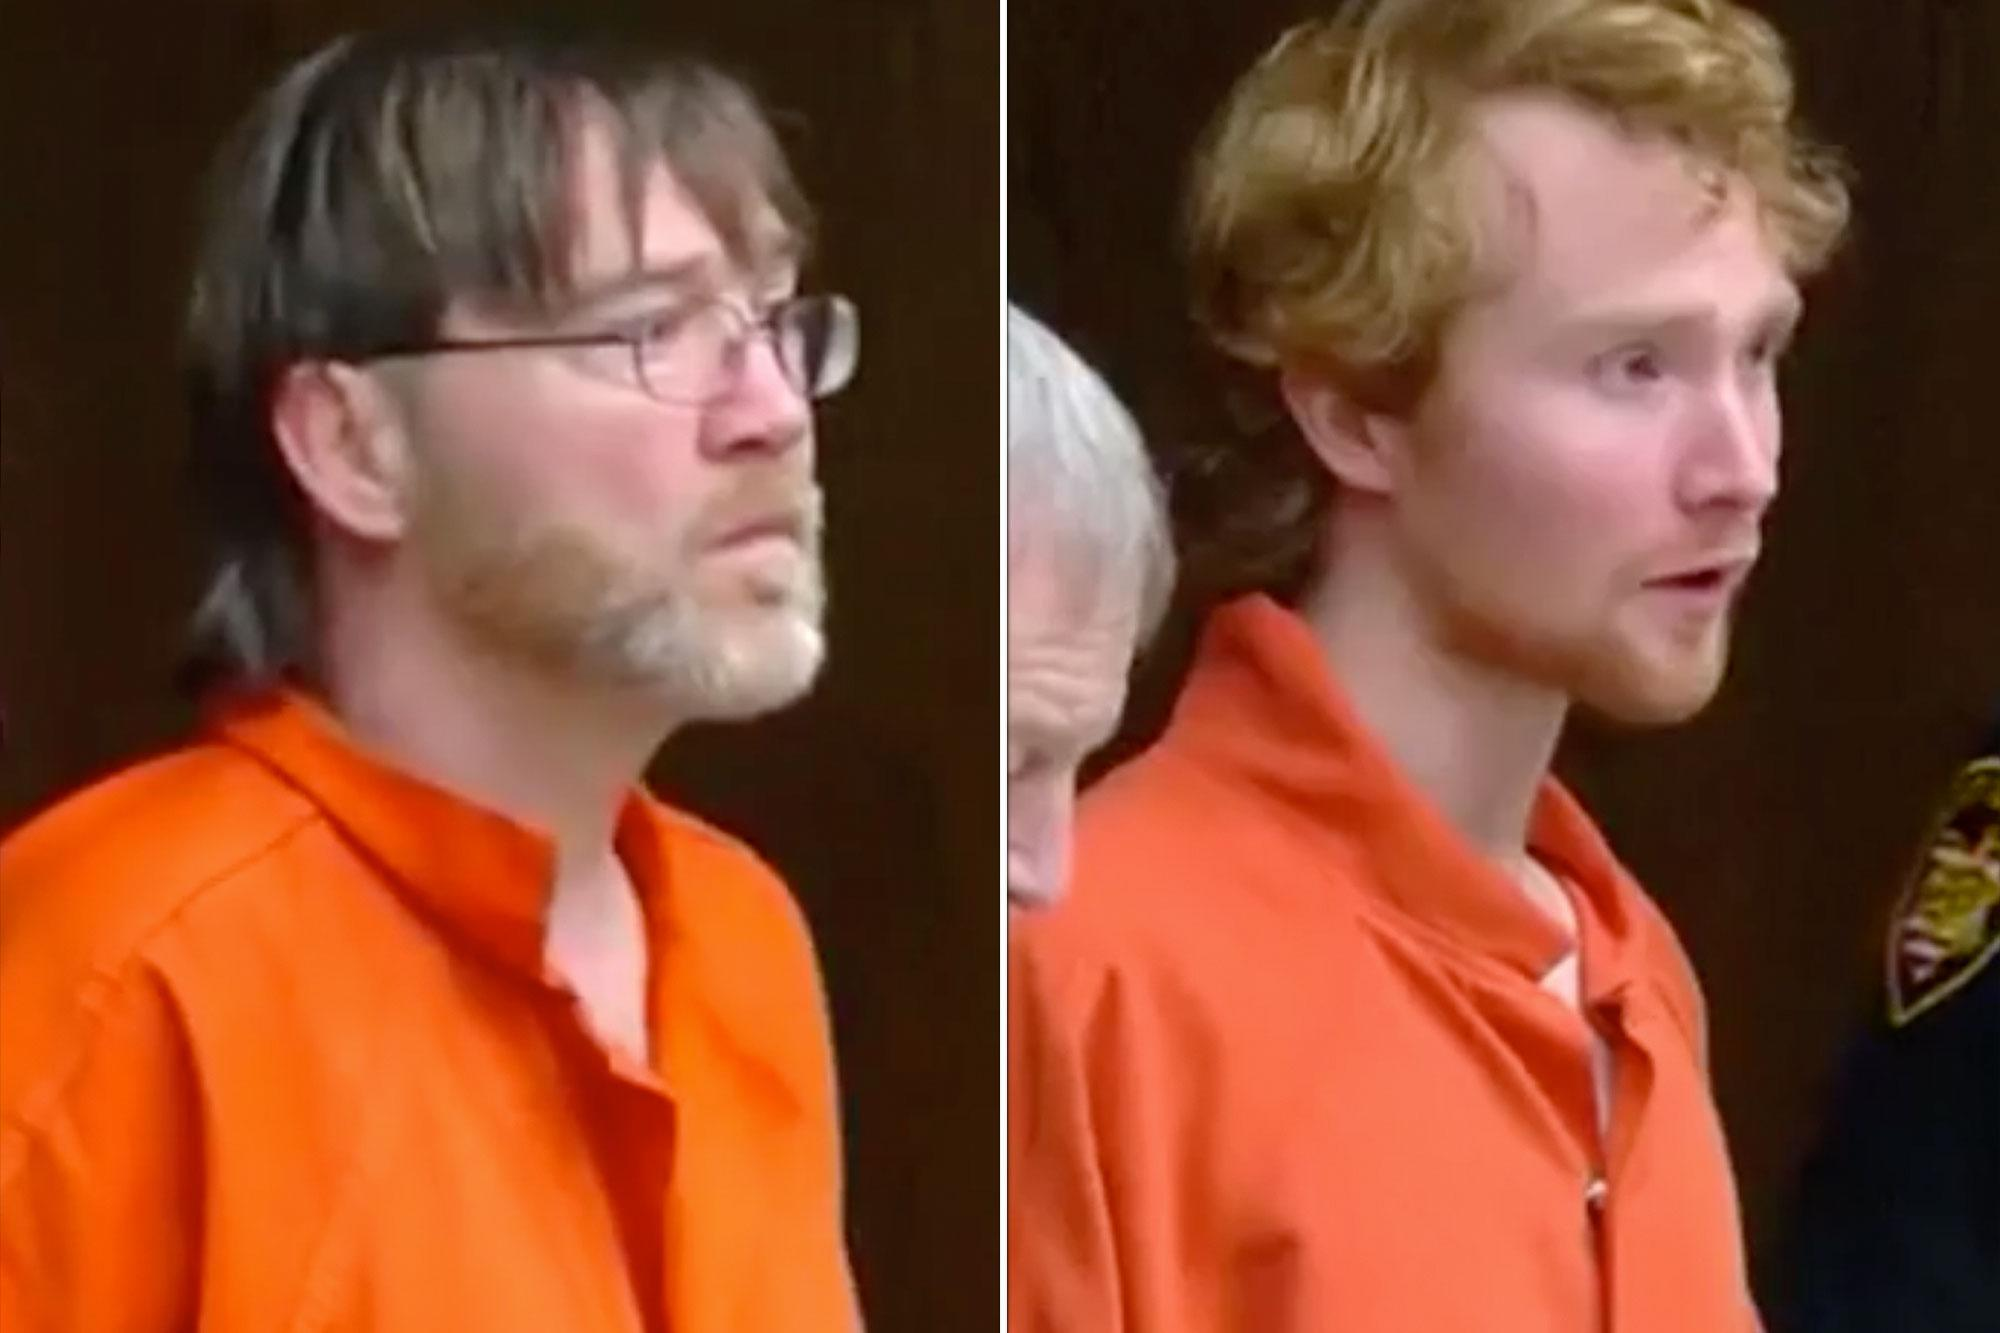 Father and Son Repeatedly Raped Teen Relative While Imprisoning Her for Years, Police Allege